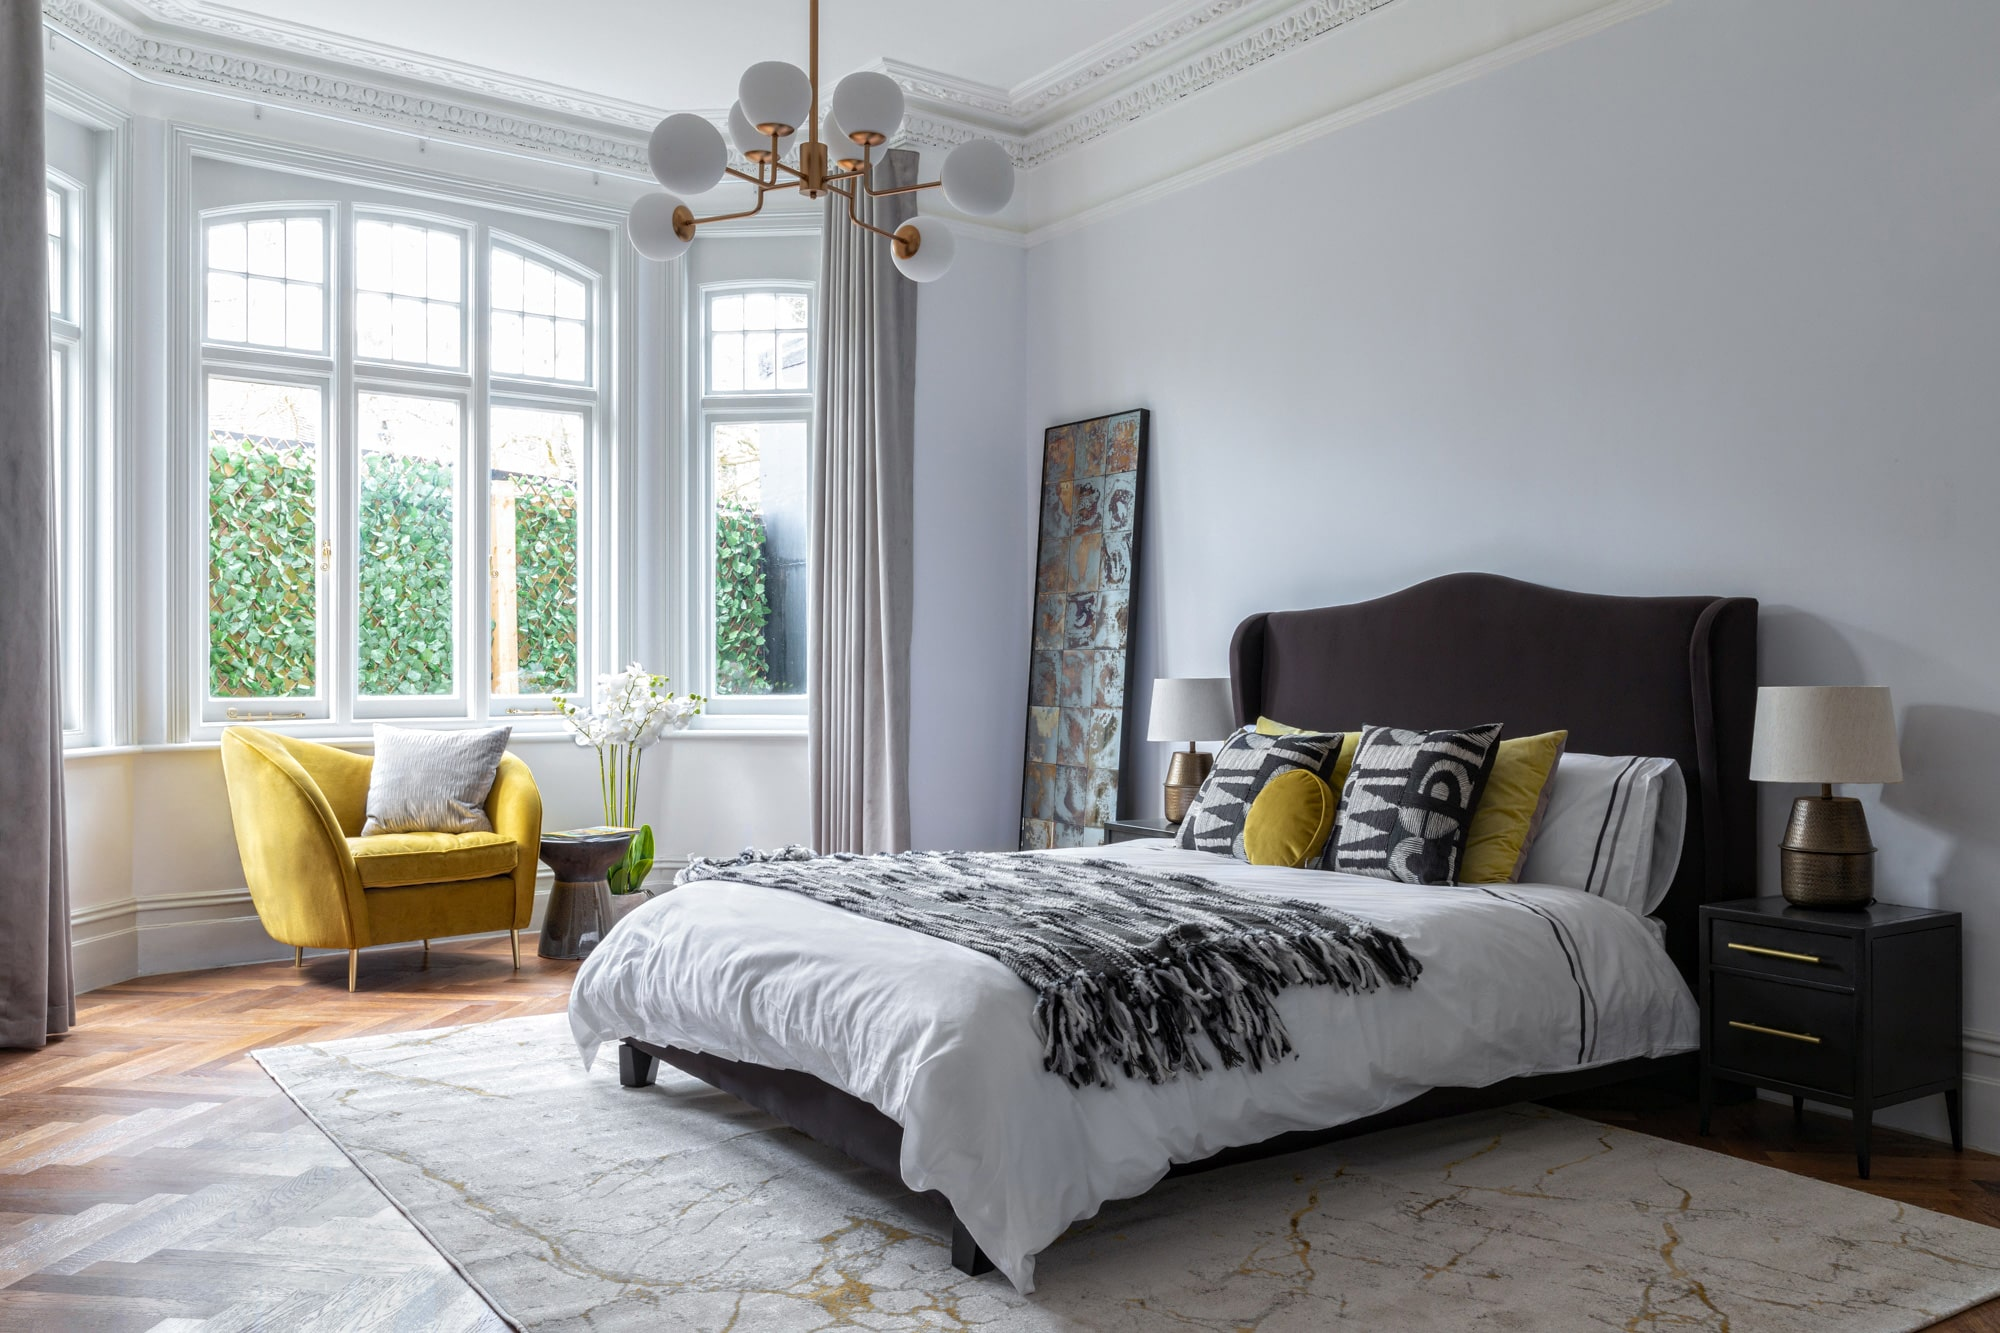 Interior photograph of a bedroom with light blue walls, brown velvet bed, yellow armchair and beautiful ceiling lighting